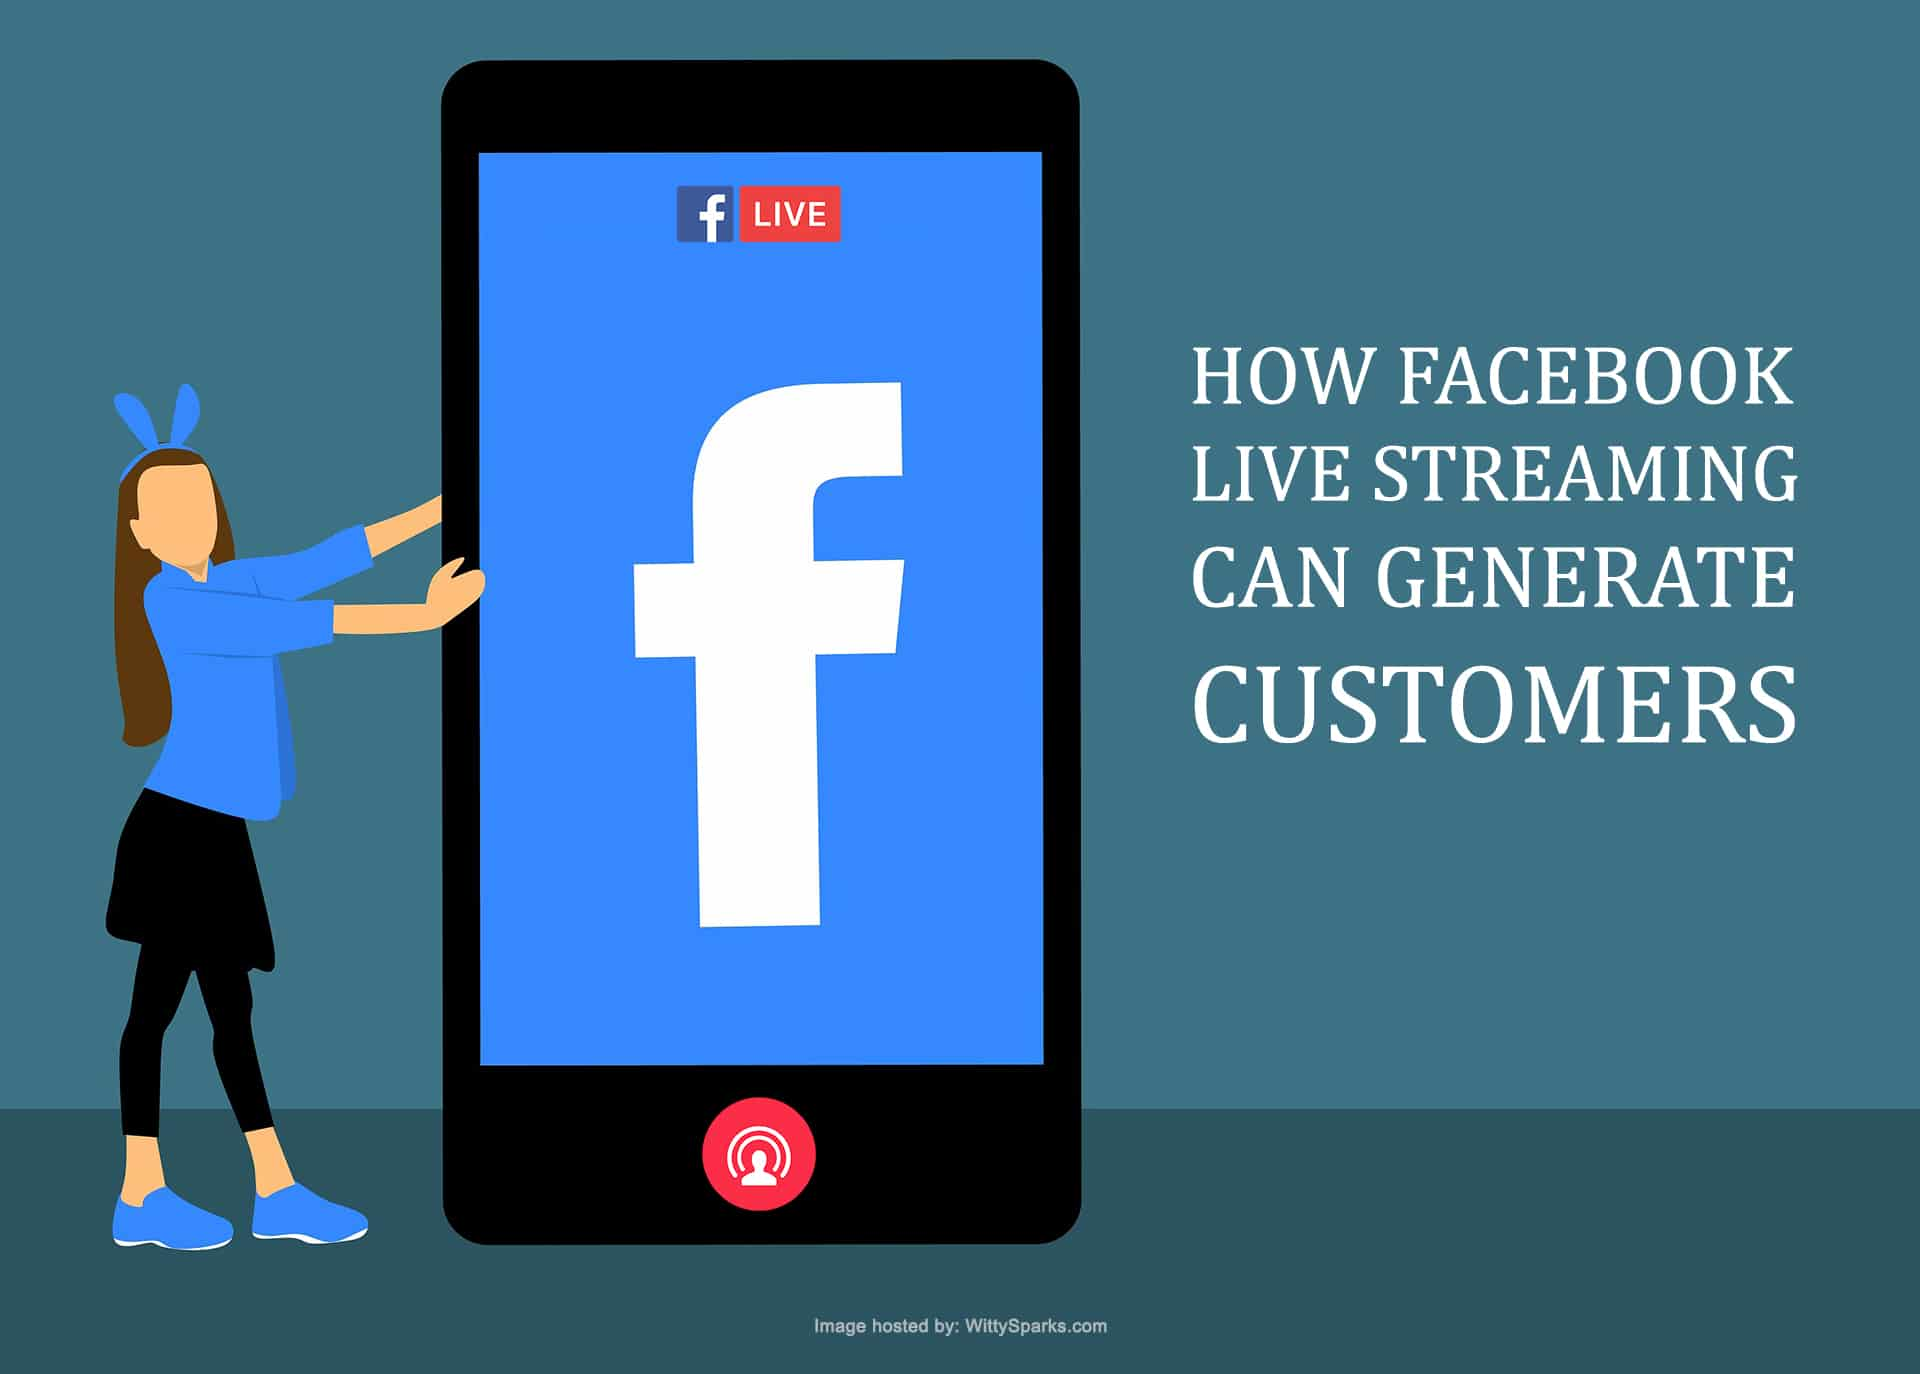 How Facebook Live Streaming can Generate Customers